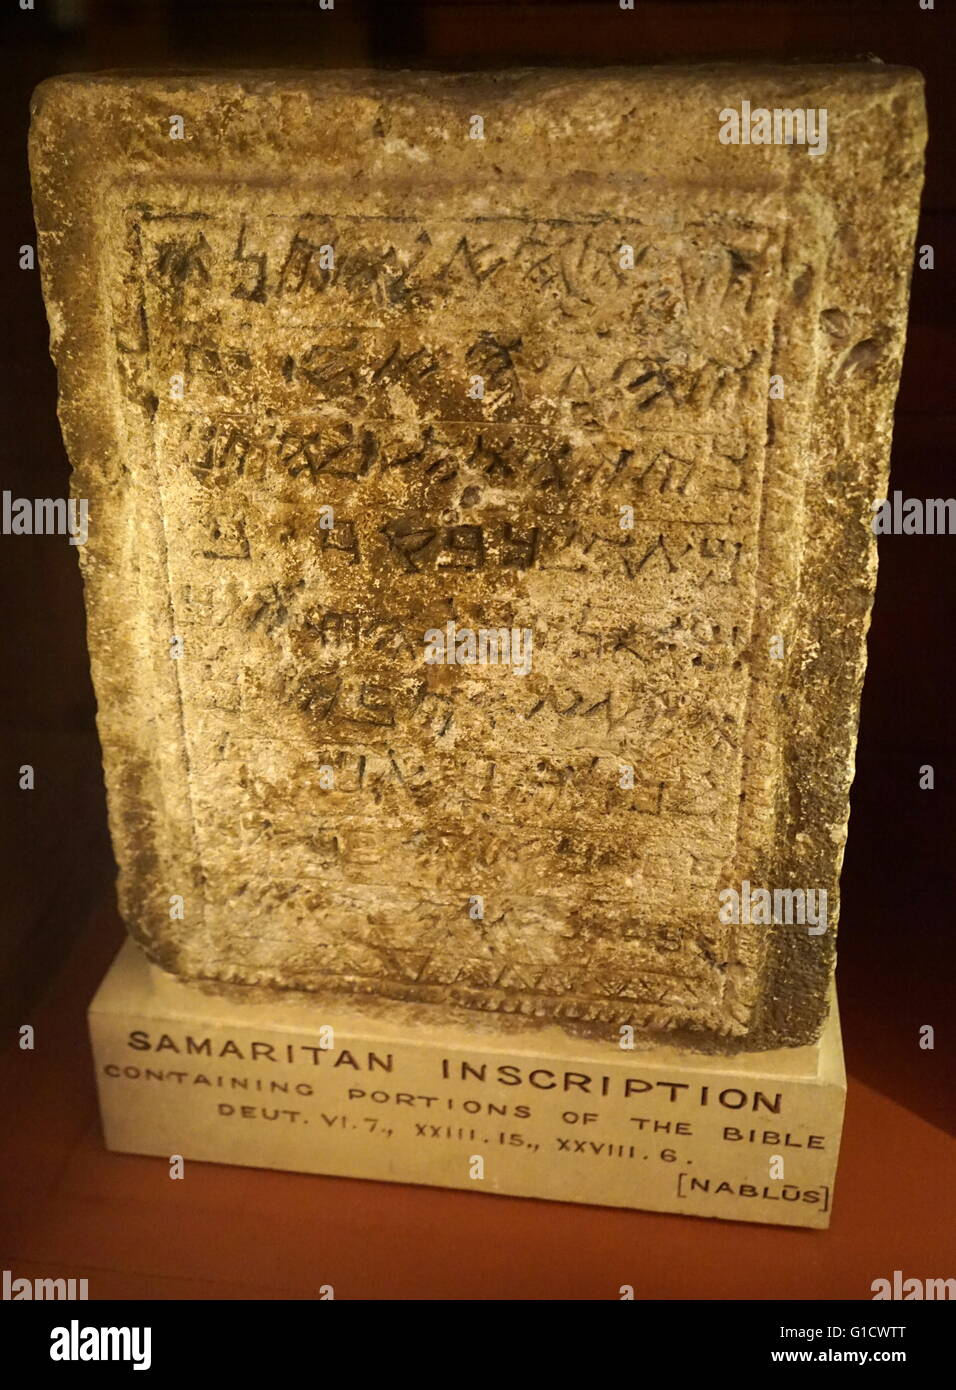 Samaritan Inscription with portions of the bible. - Stock Image